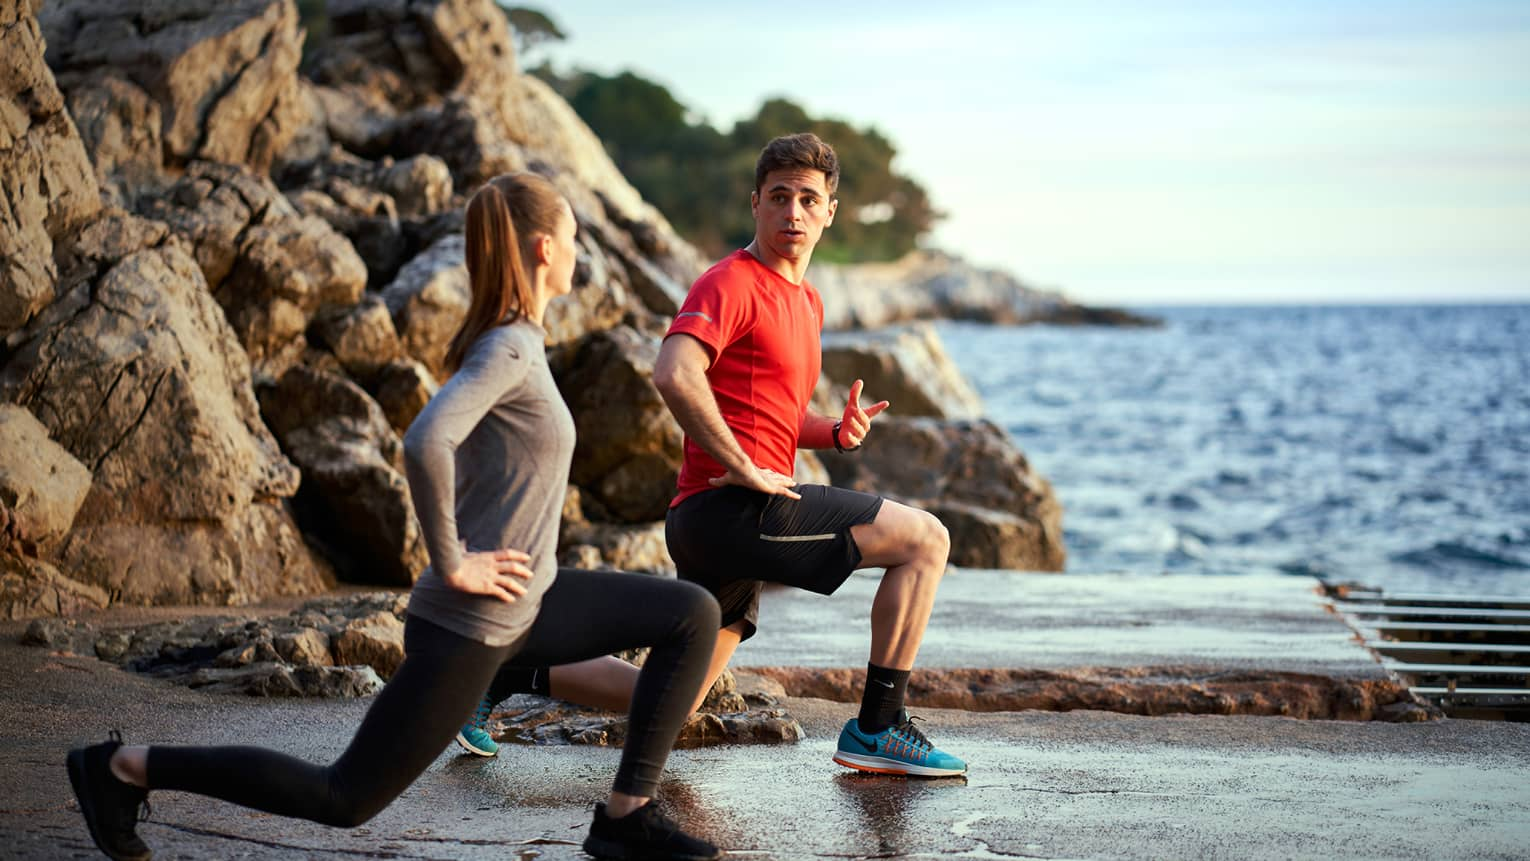 A man trains a woman while doing lunges outside next to the sea and rocks